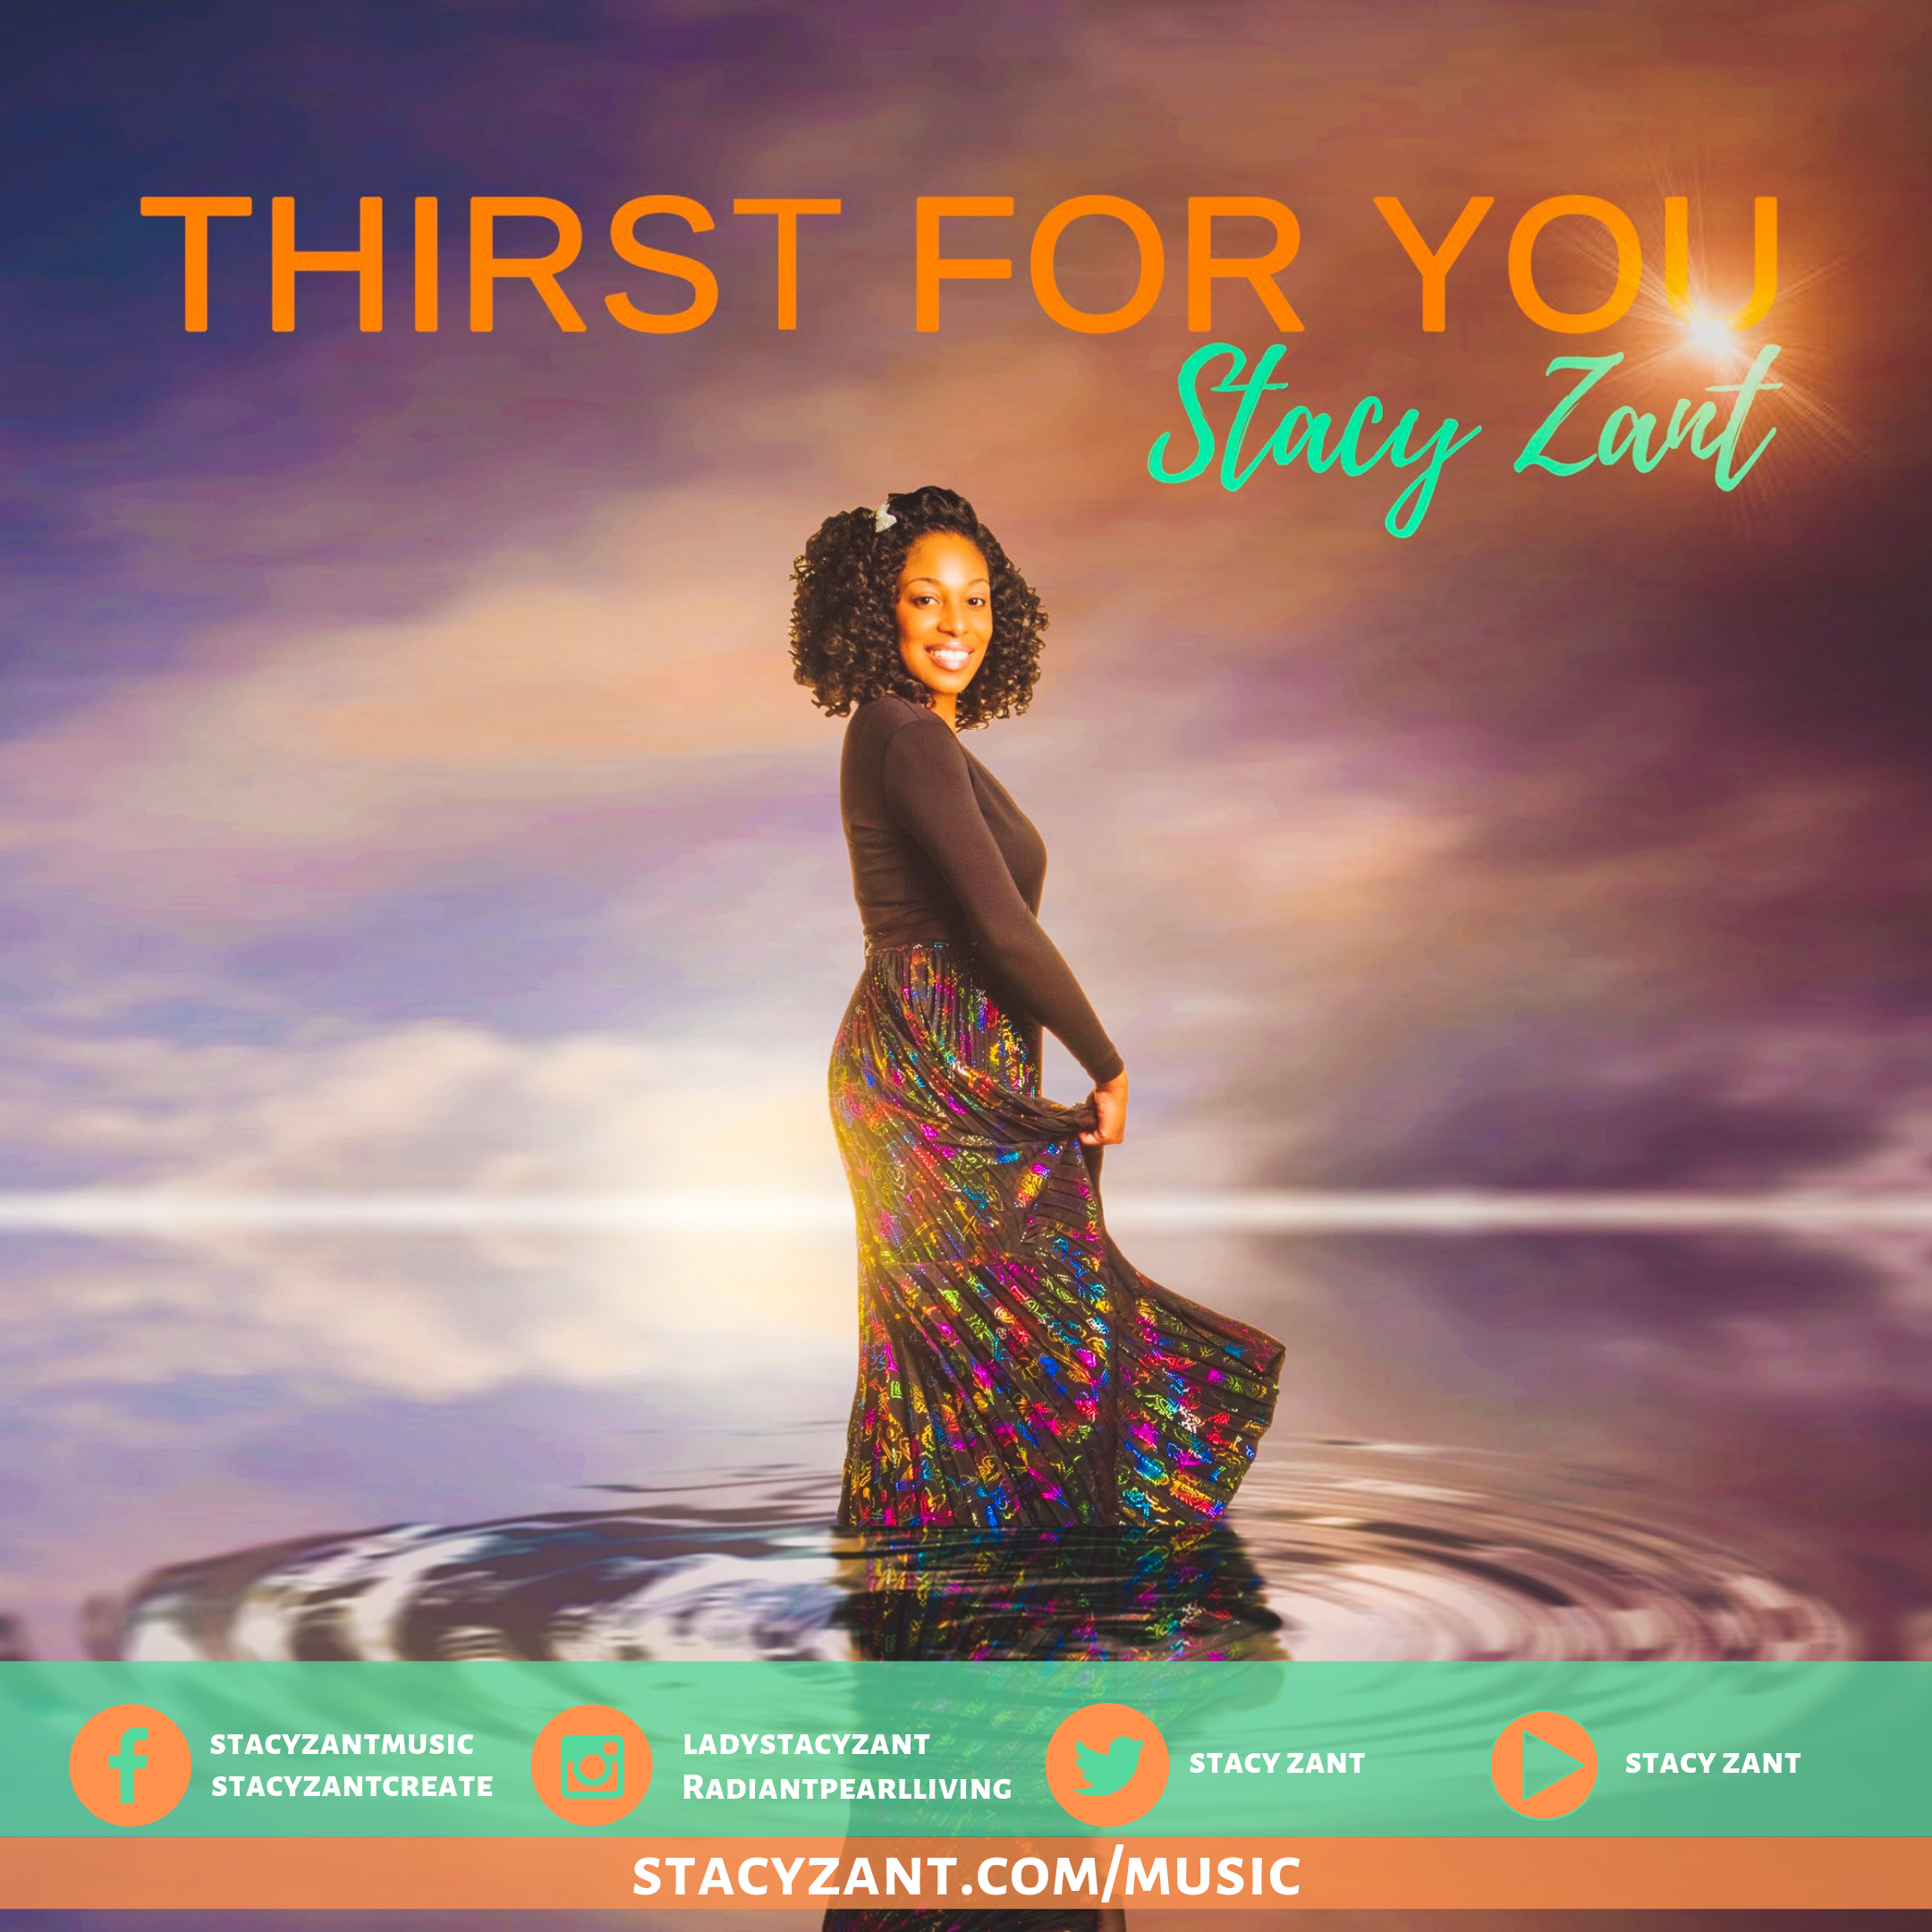 Stacy Zant Thirst for You Orange and Green 2019 Promo Cover